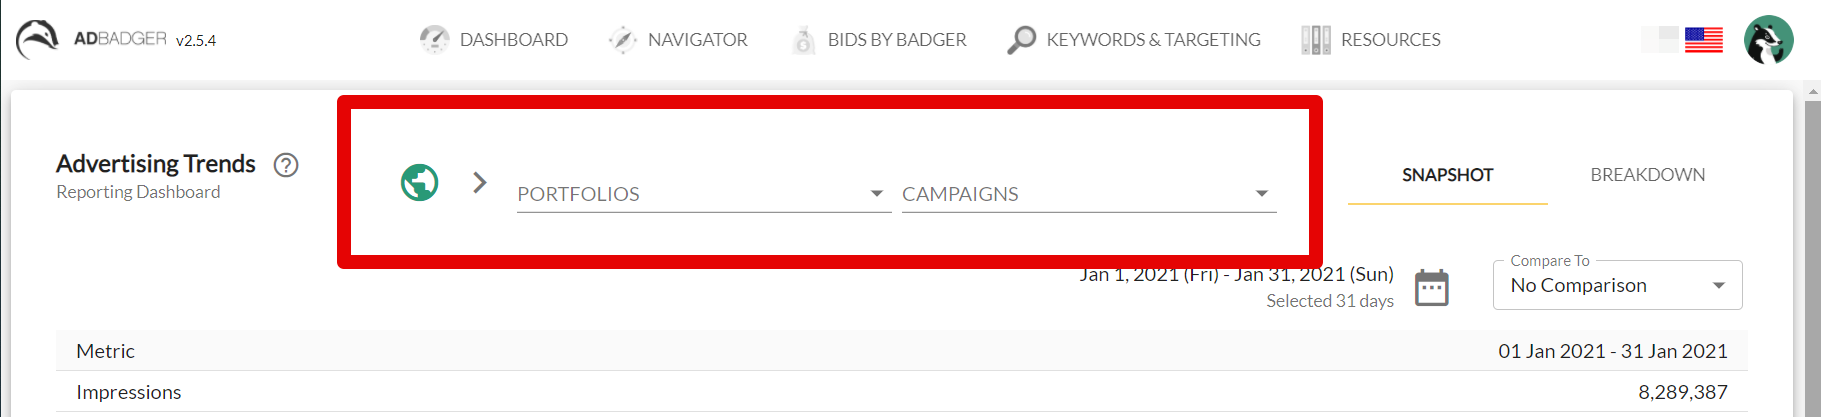 A screenshot of the SuperSearch feature inside of the Ad Badger Advertising Trends Report.